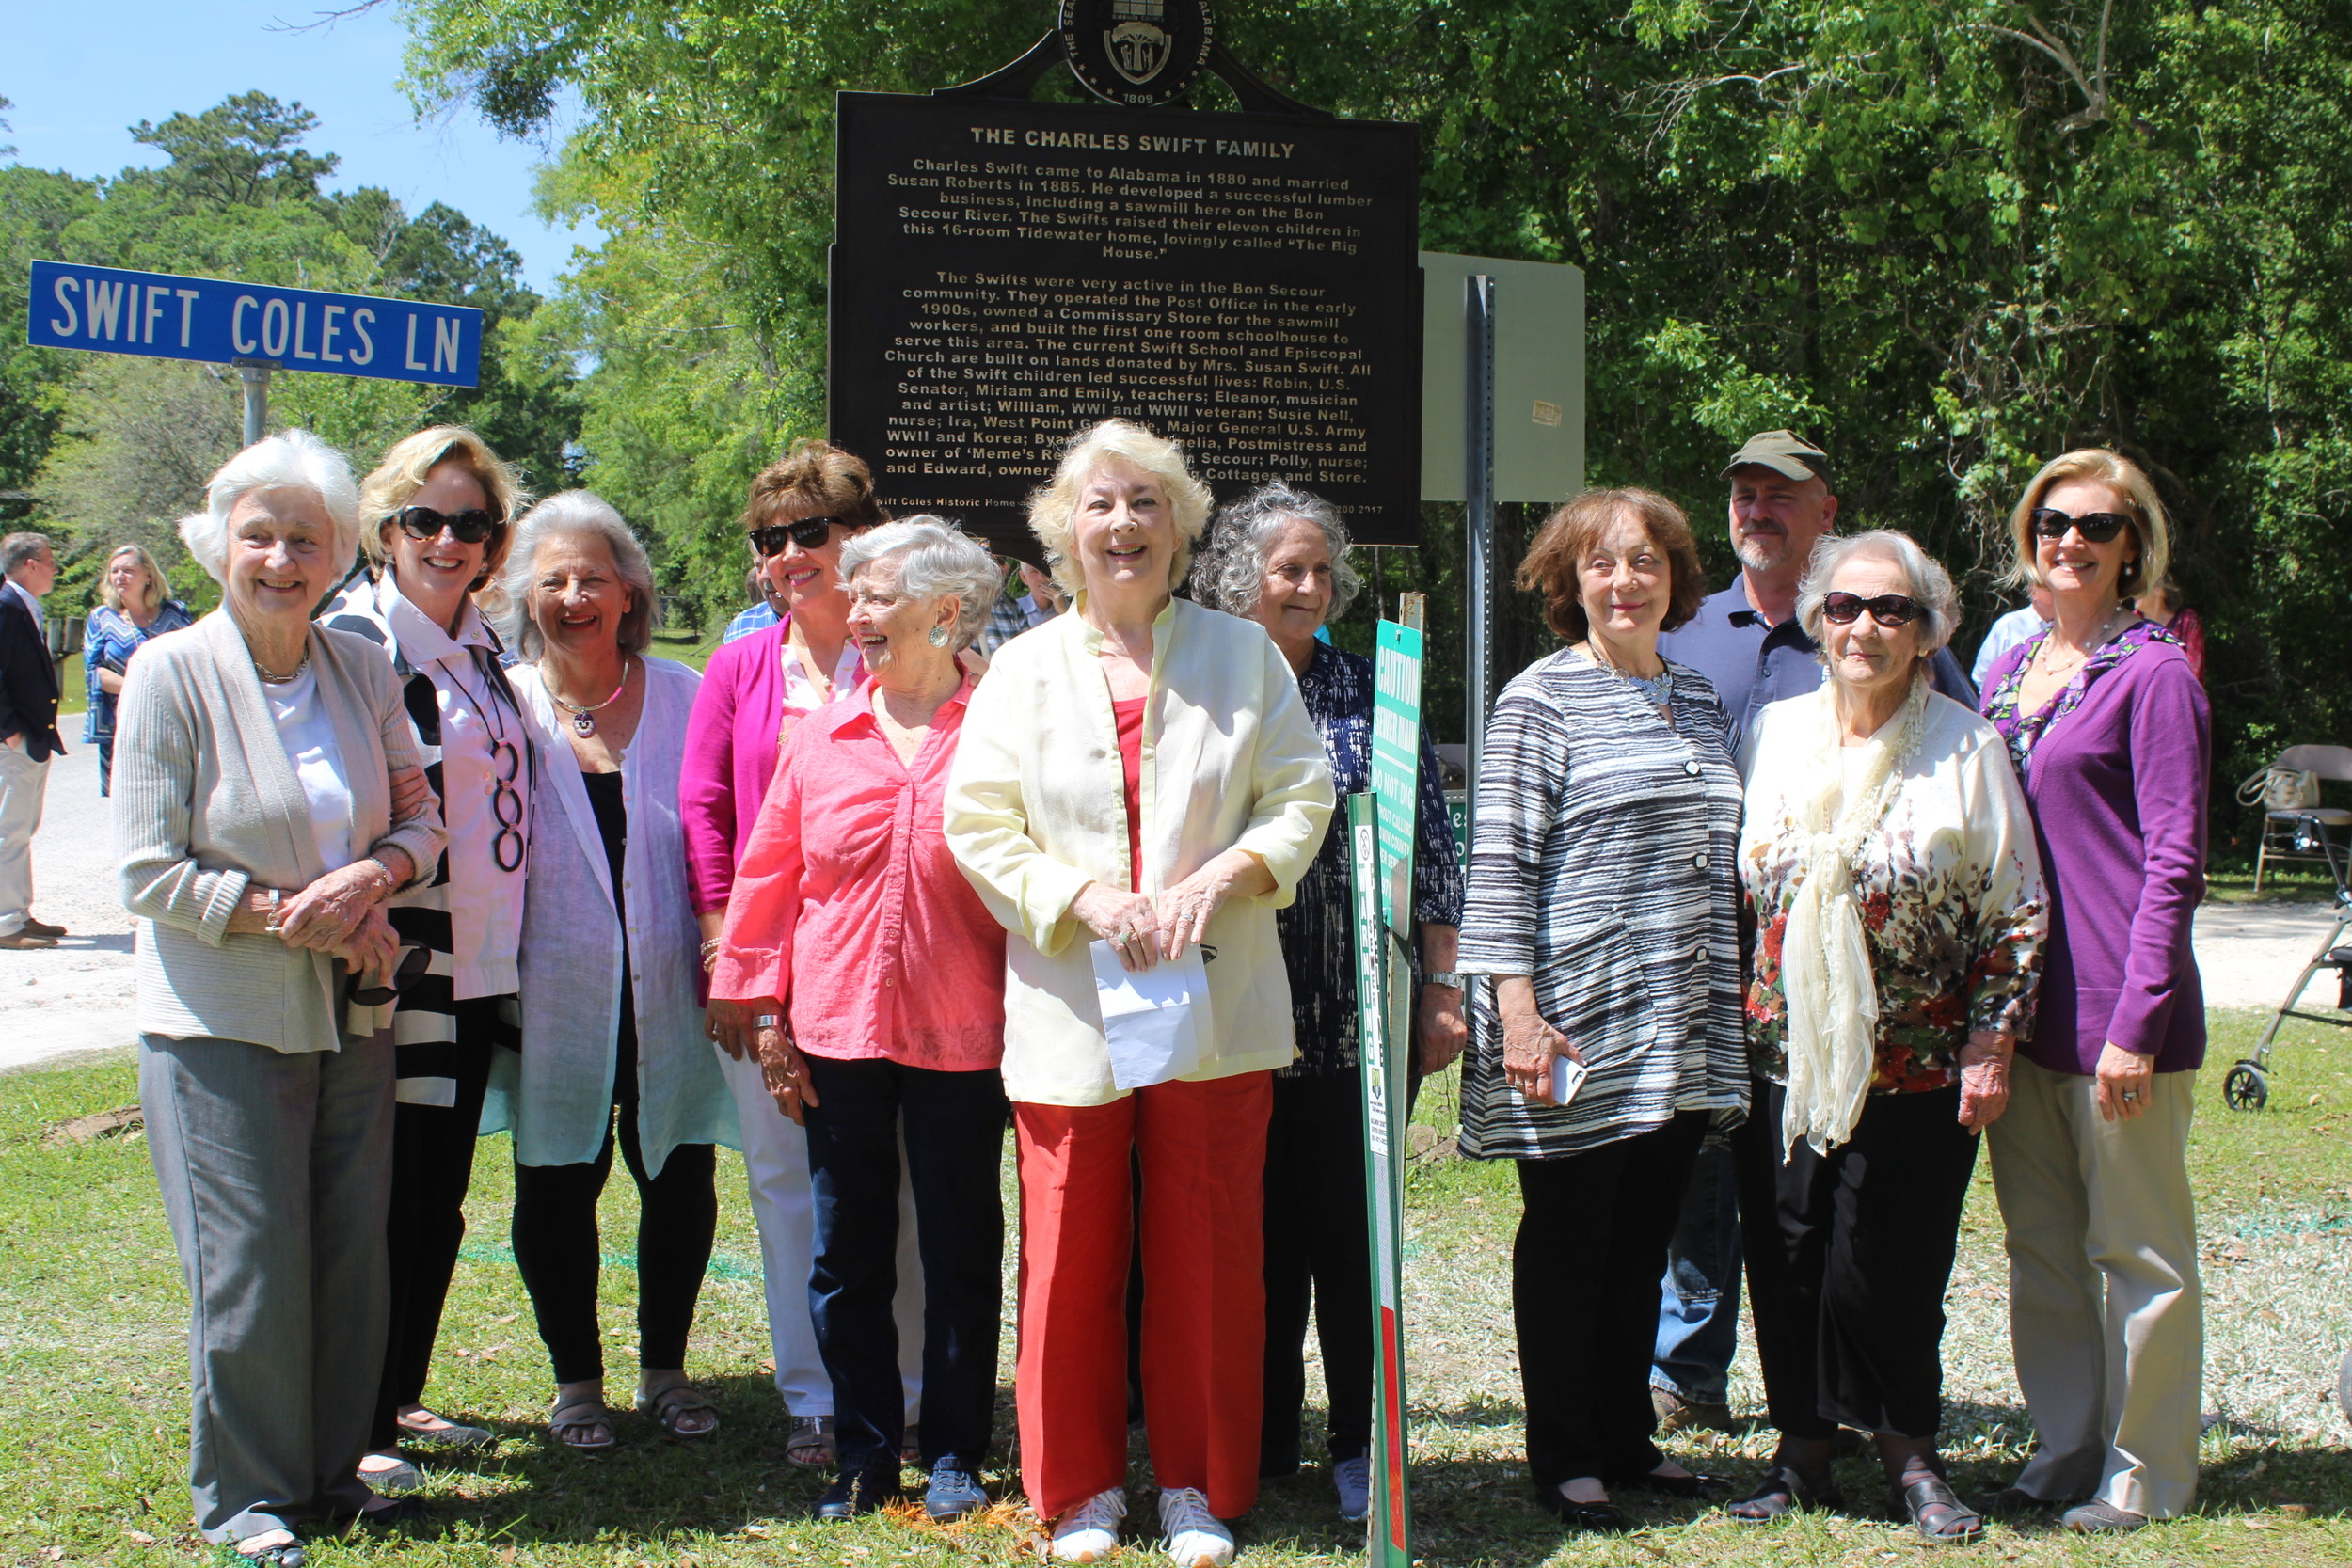 Swift-Coles Home memorialized with new historical marker